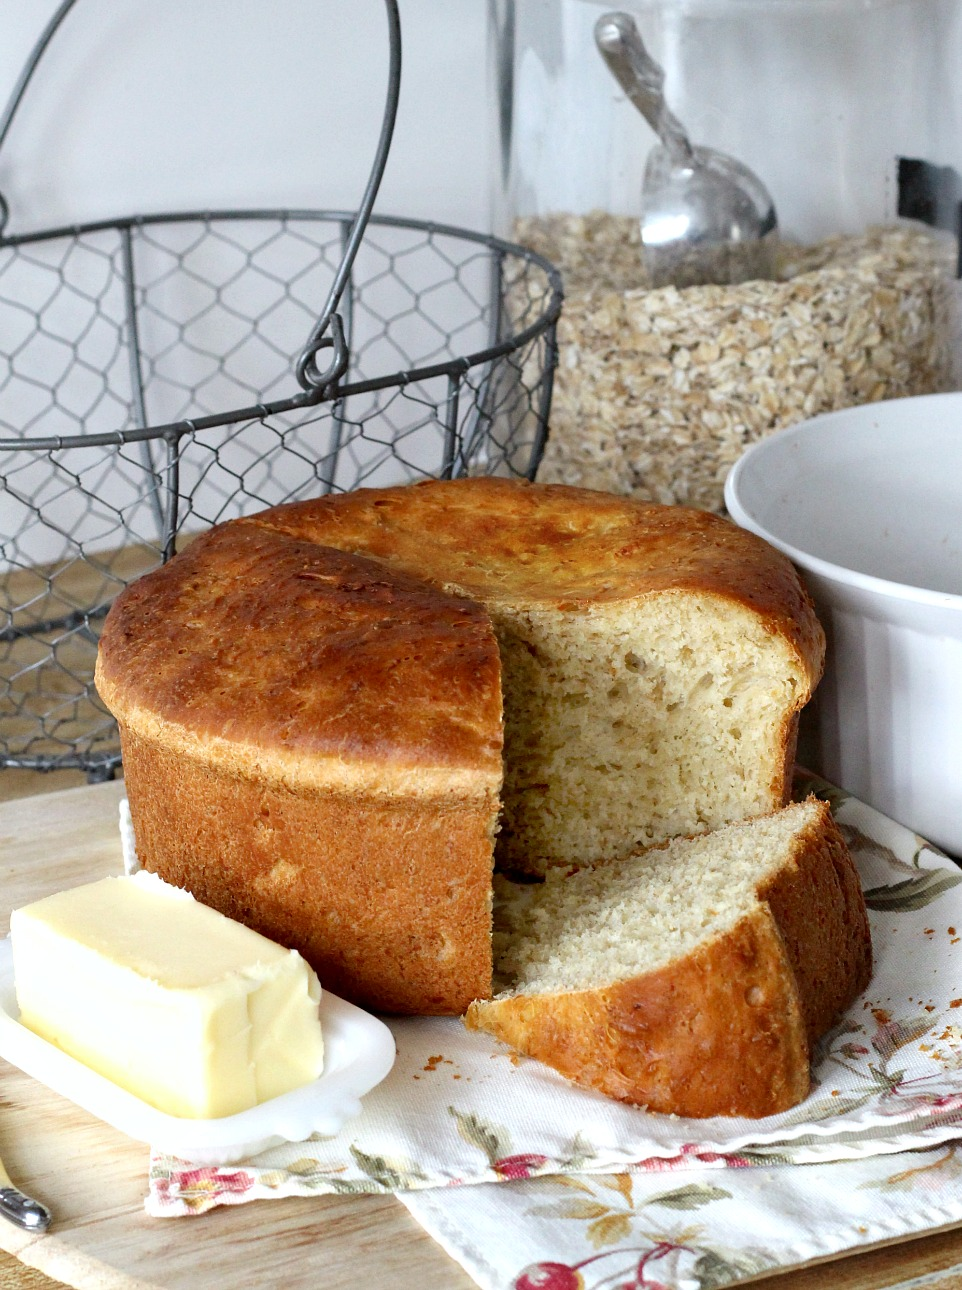 Or Sometimes When I Want To Serve Something Extra To Round Out A Meal The Appetizing Aroma Of Honey Oat Casserole Bread With Its Tender